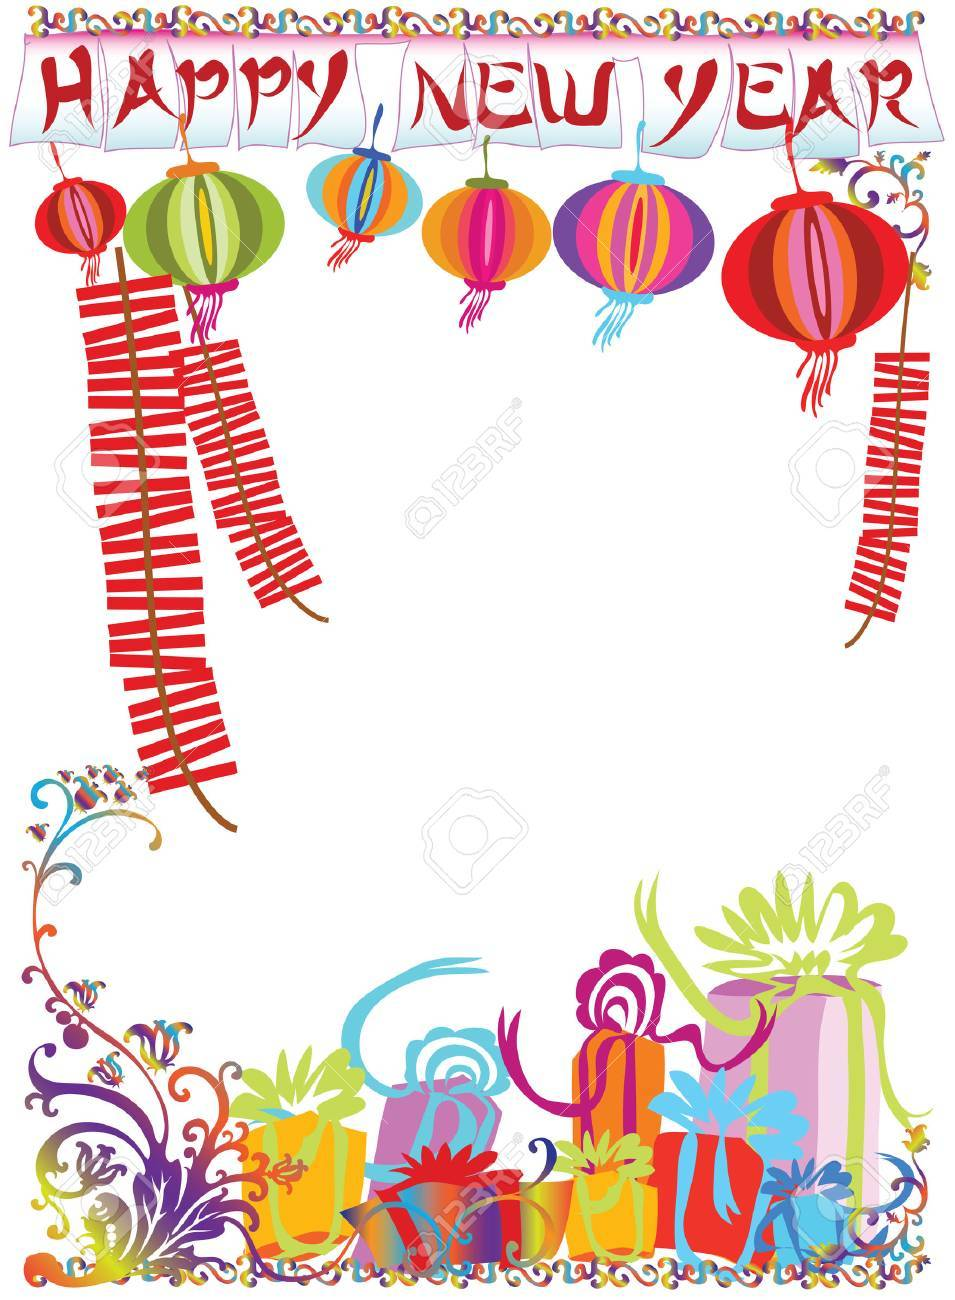 Illustration new year sign and ornament for decoration background design. Stock Vector - 7505768